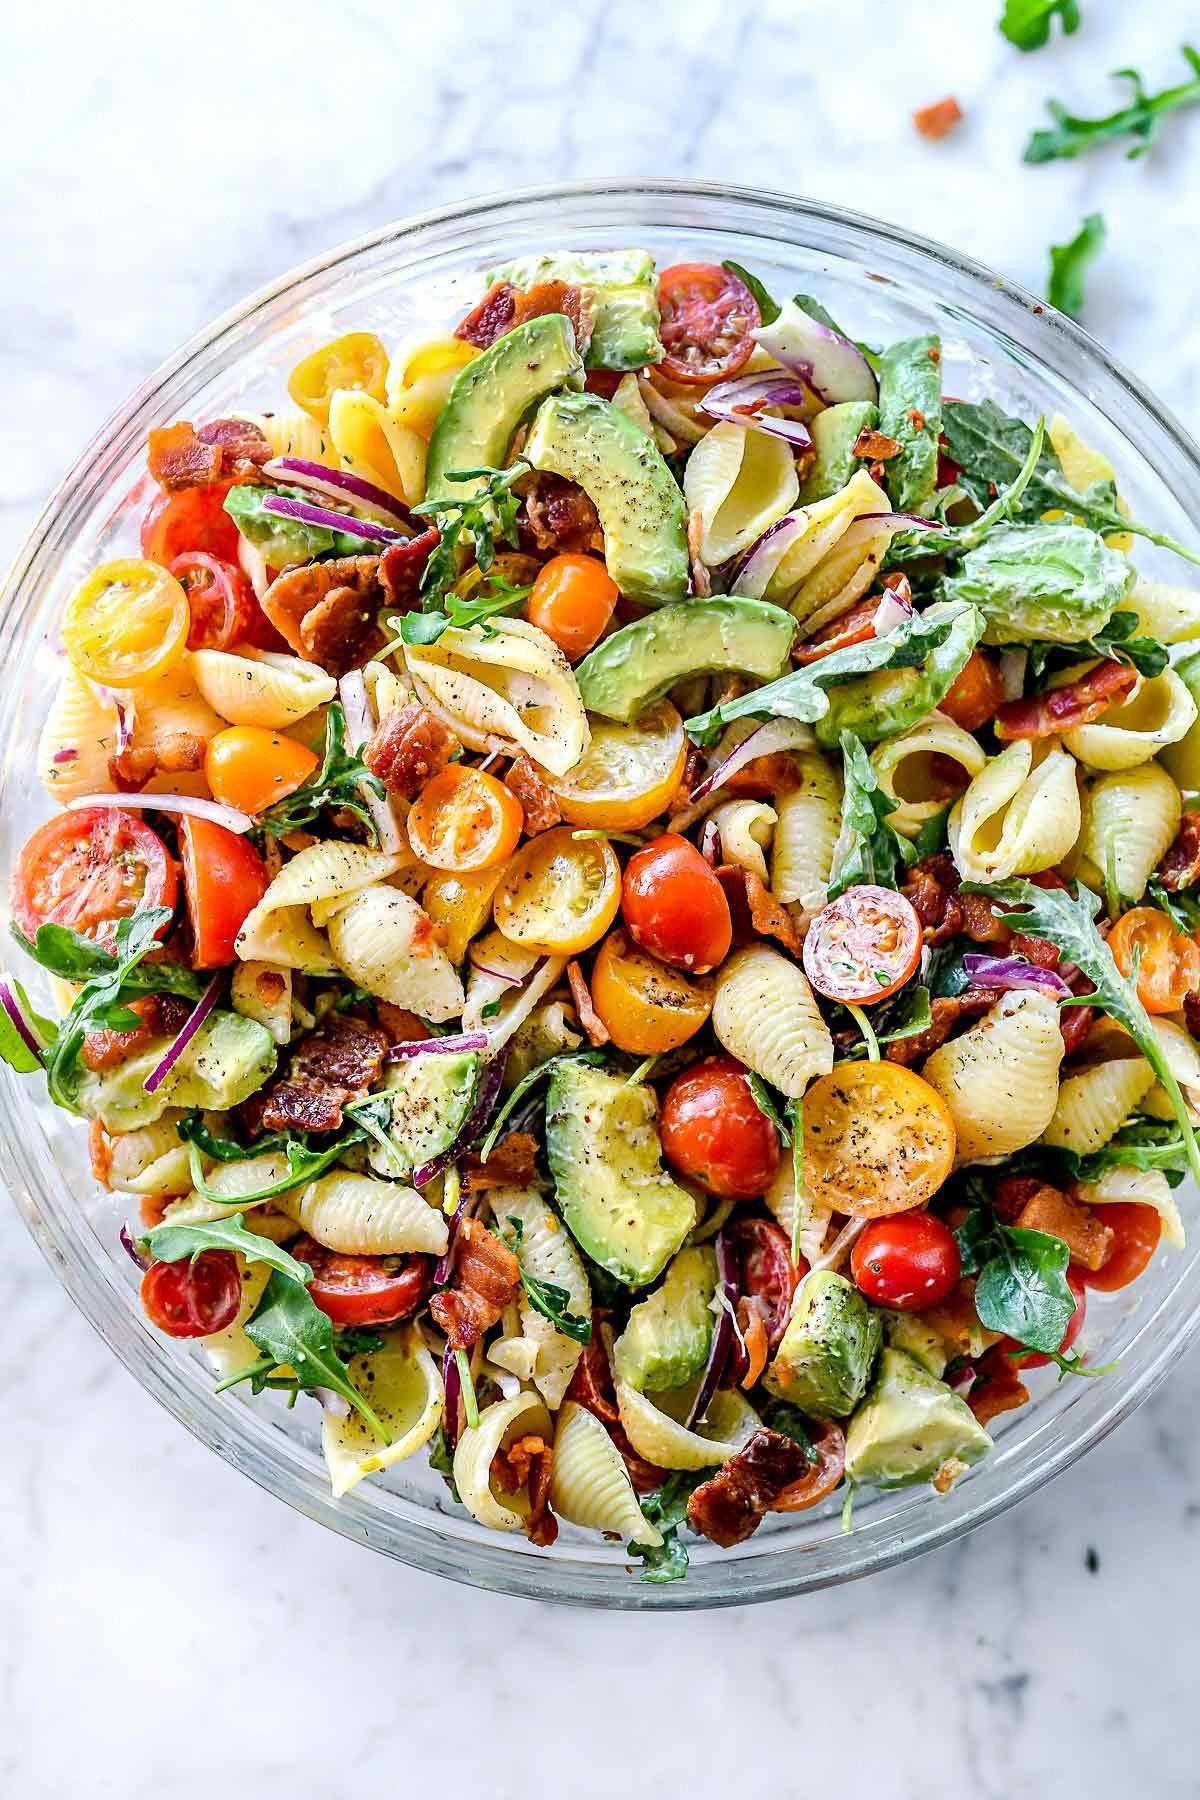 Blt Pasta Salad With Avocado Recipe Pasta Salad Recipes